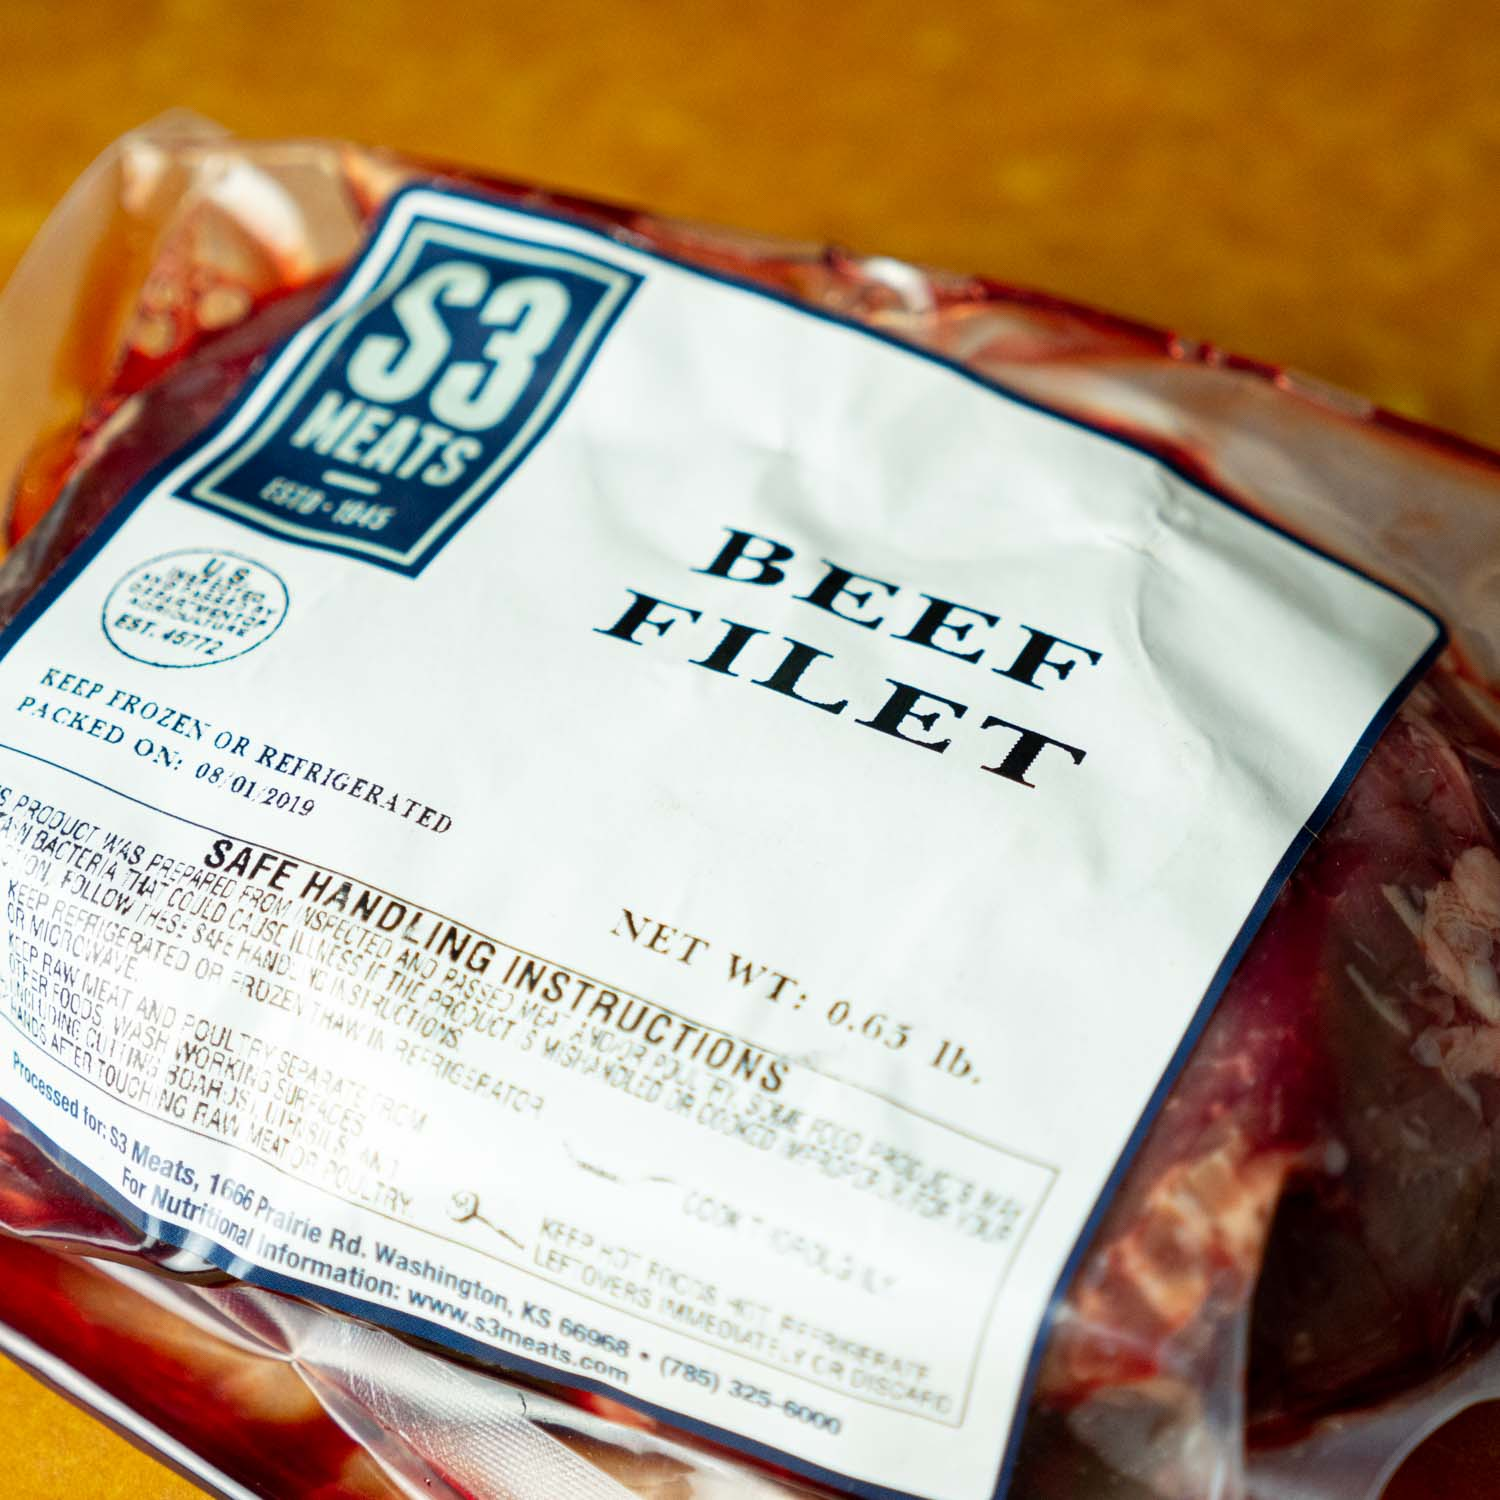 Filet - 2 steak pack